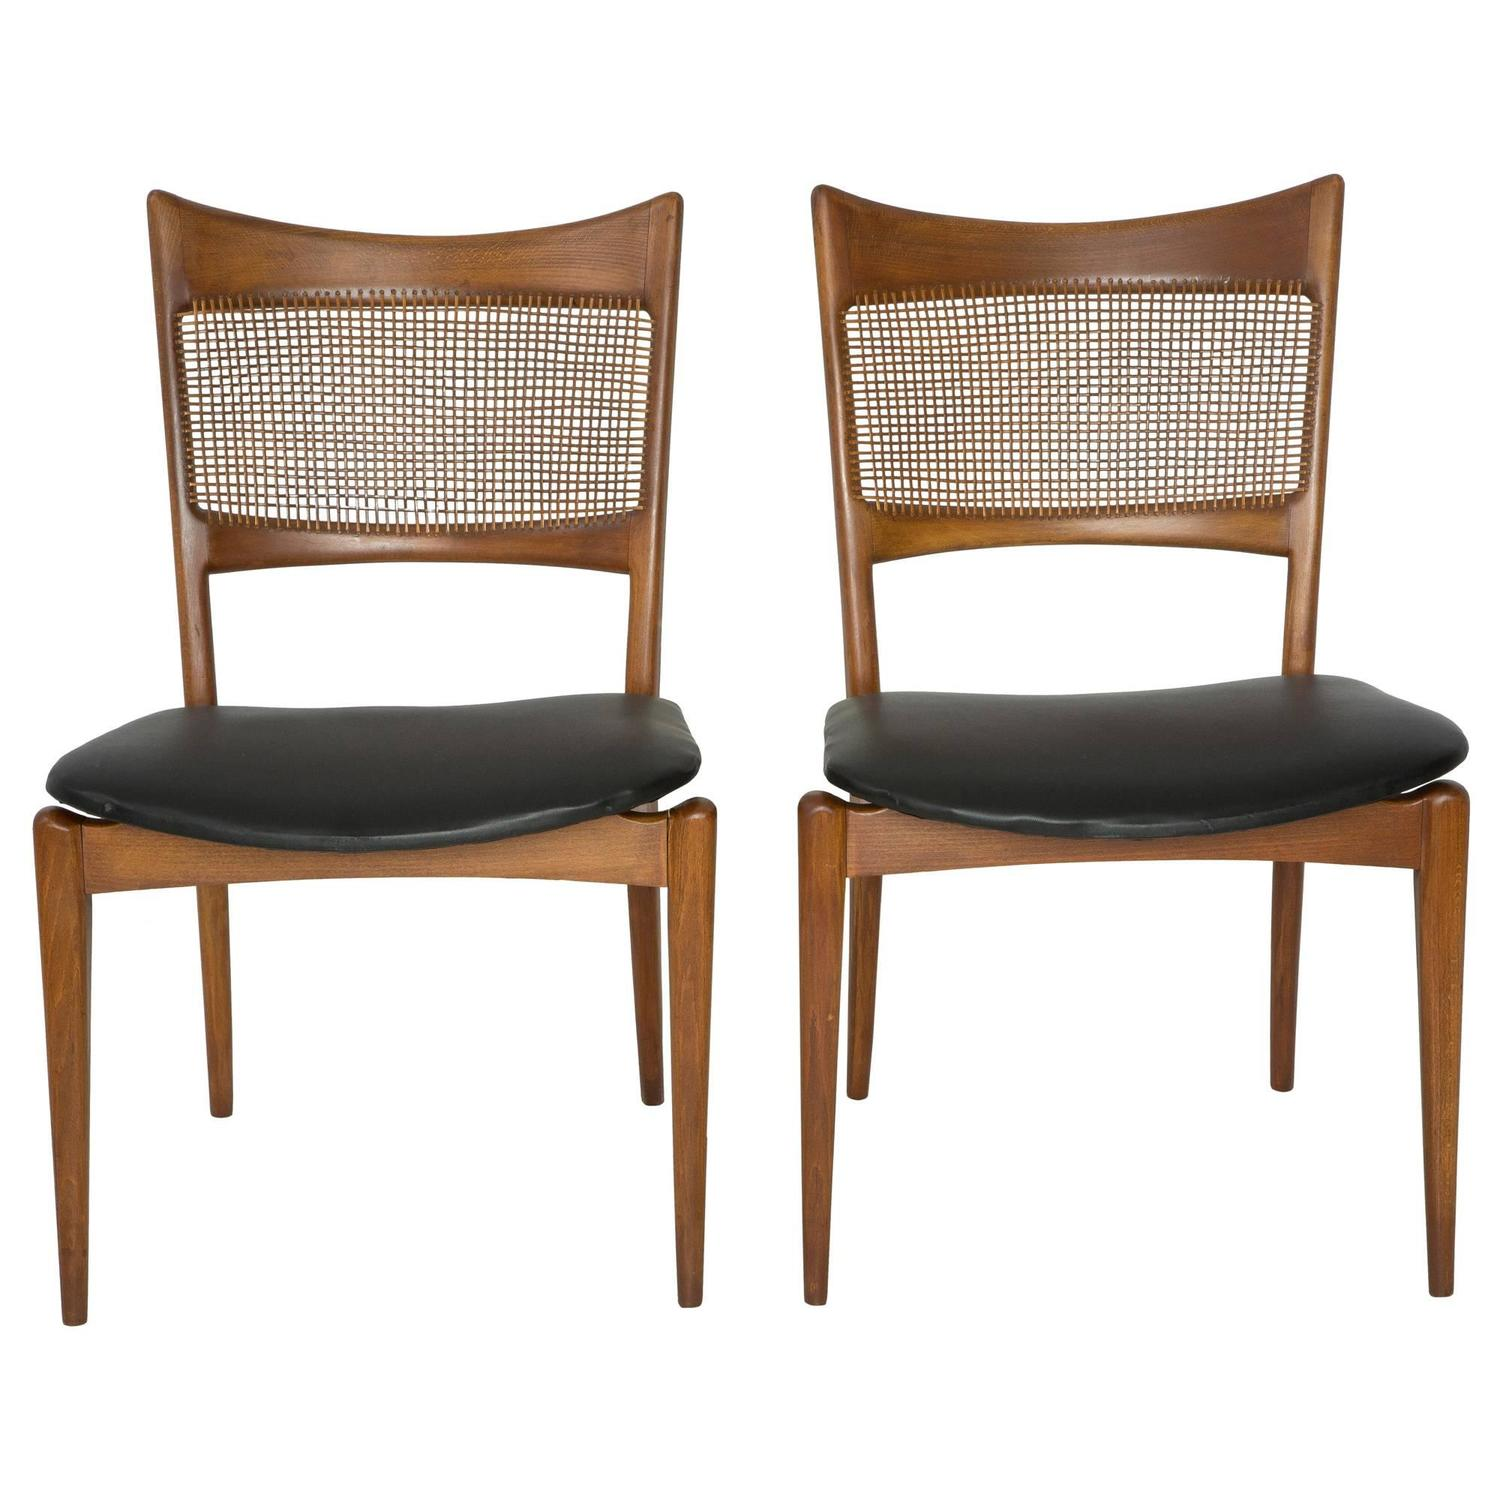 Pair of edmund spence style woven back chairs for sale at for Furniture 80s band